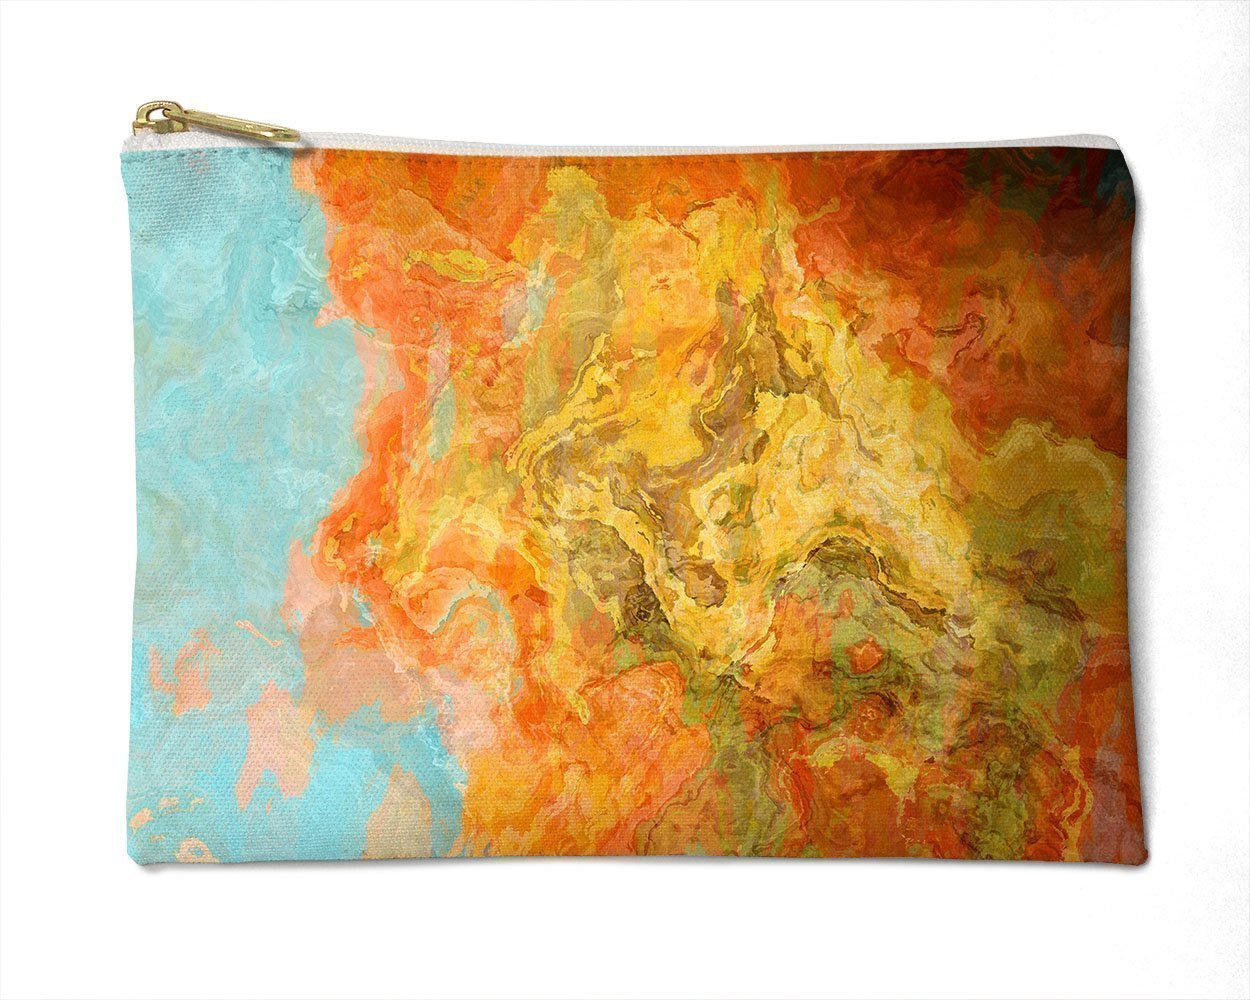 Makeup Bag or Pencil Case with Abstract Art in Orange and Aqua, Electric Illusion